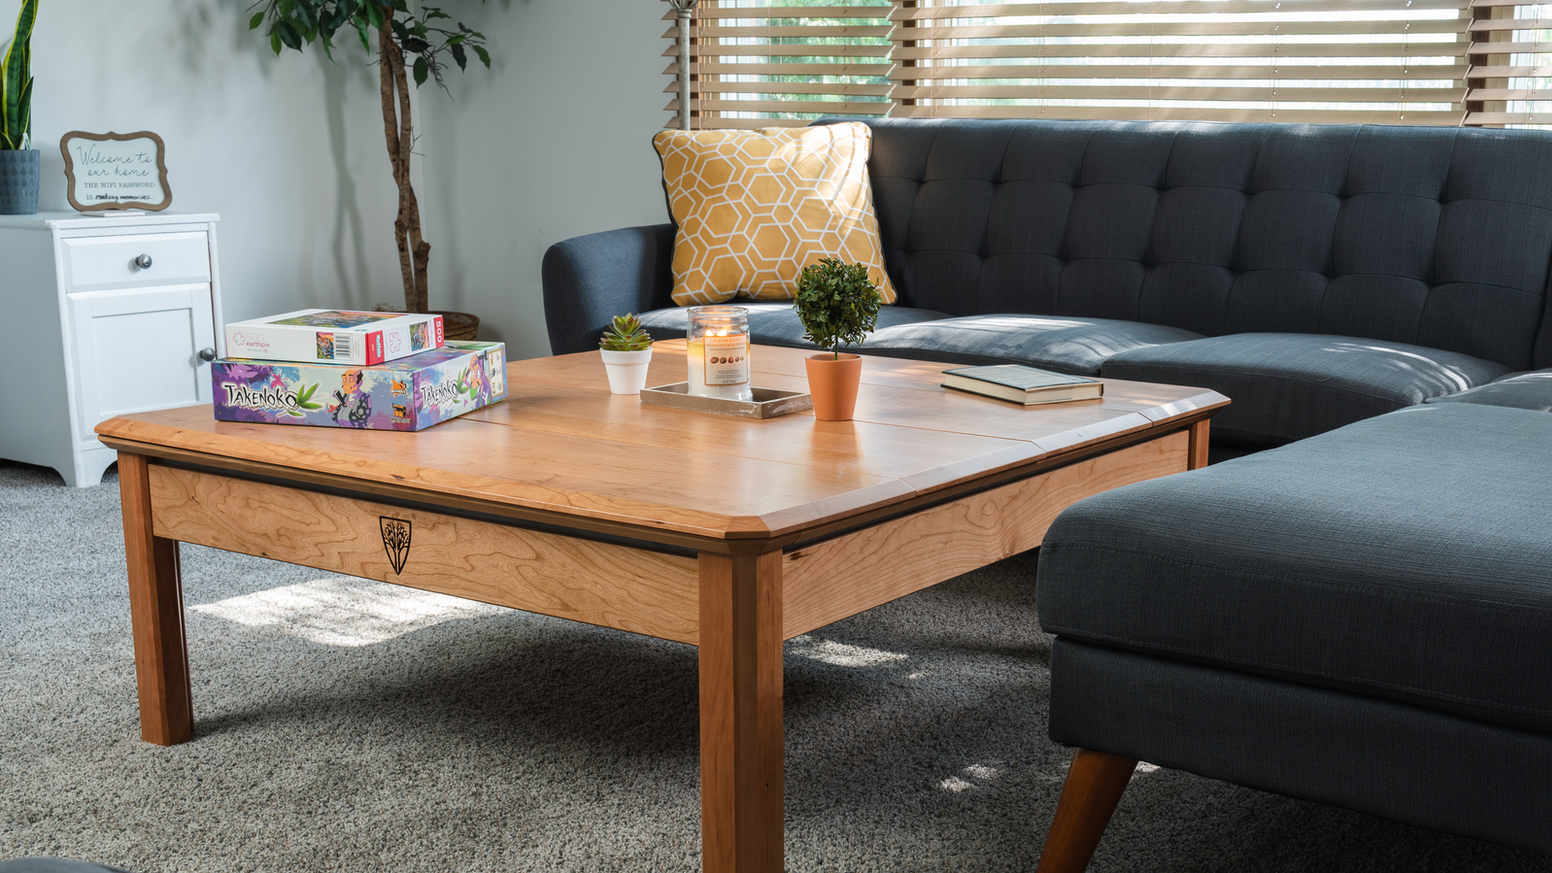 A revolutionary table that evolves over a lifetime. Innovative, yet affordable, with magnetic accessories. Crafted without compromise.